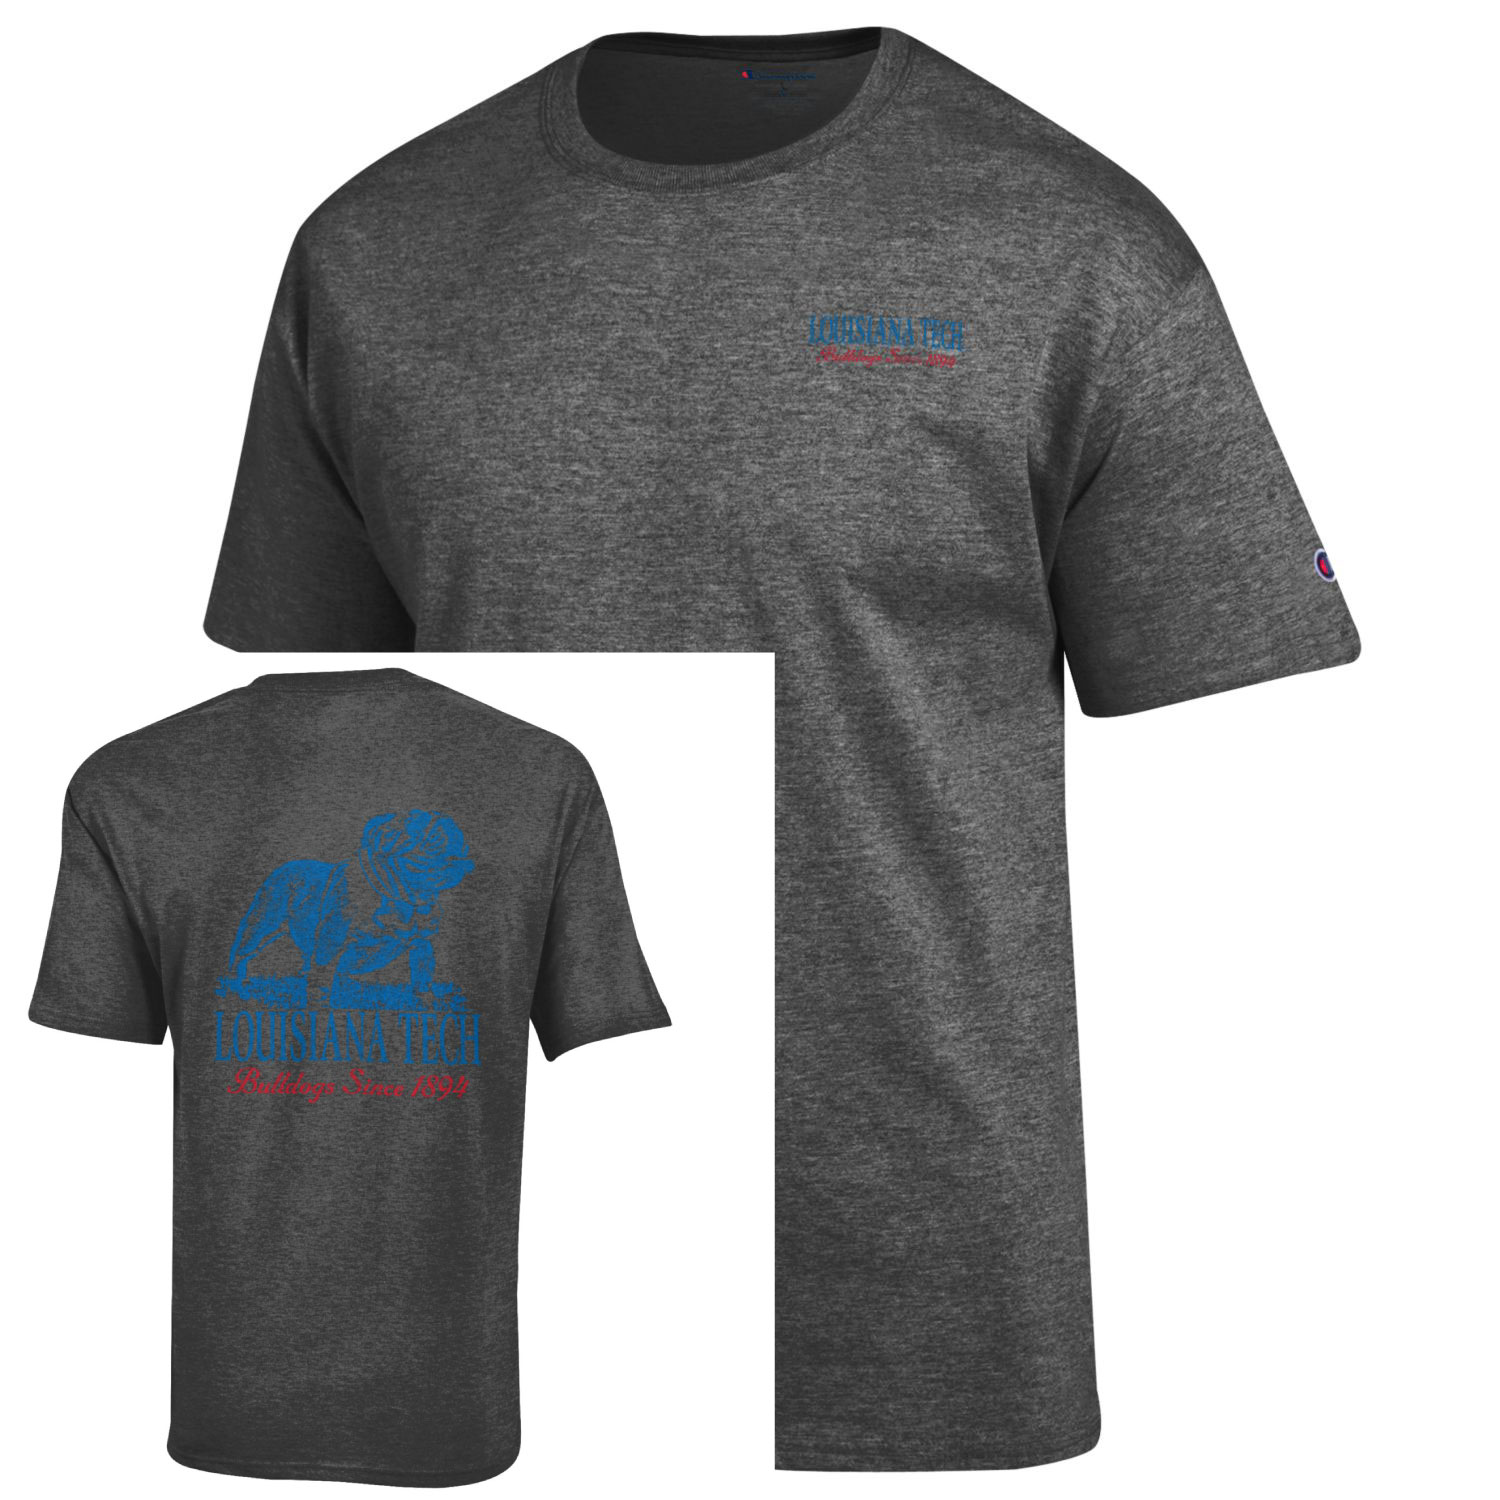 La Tech Basic T-Shirt